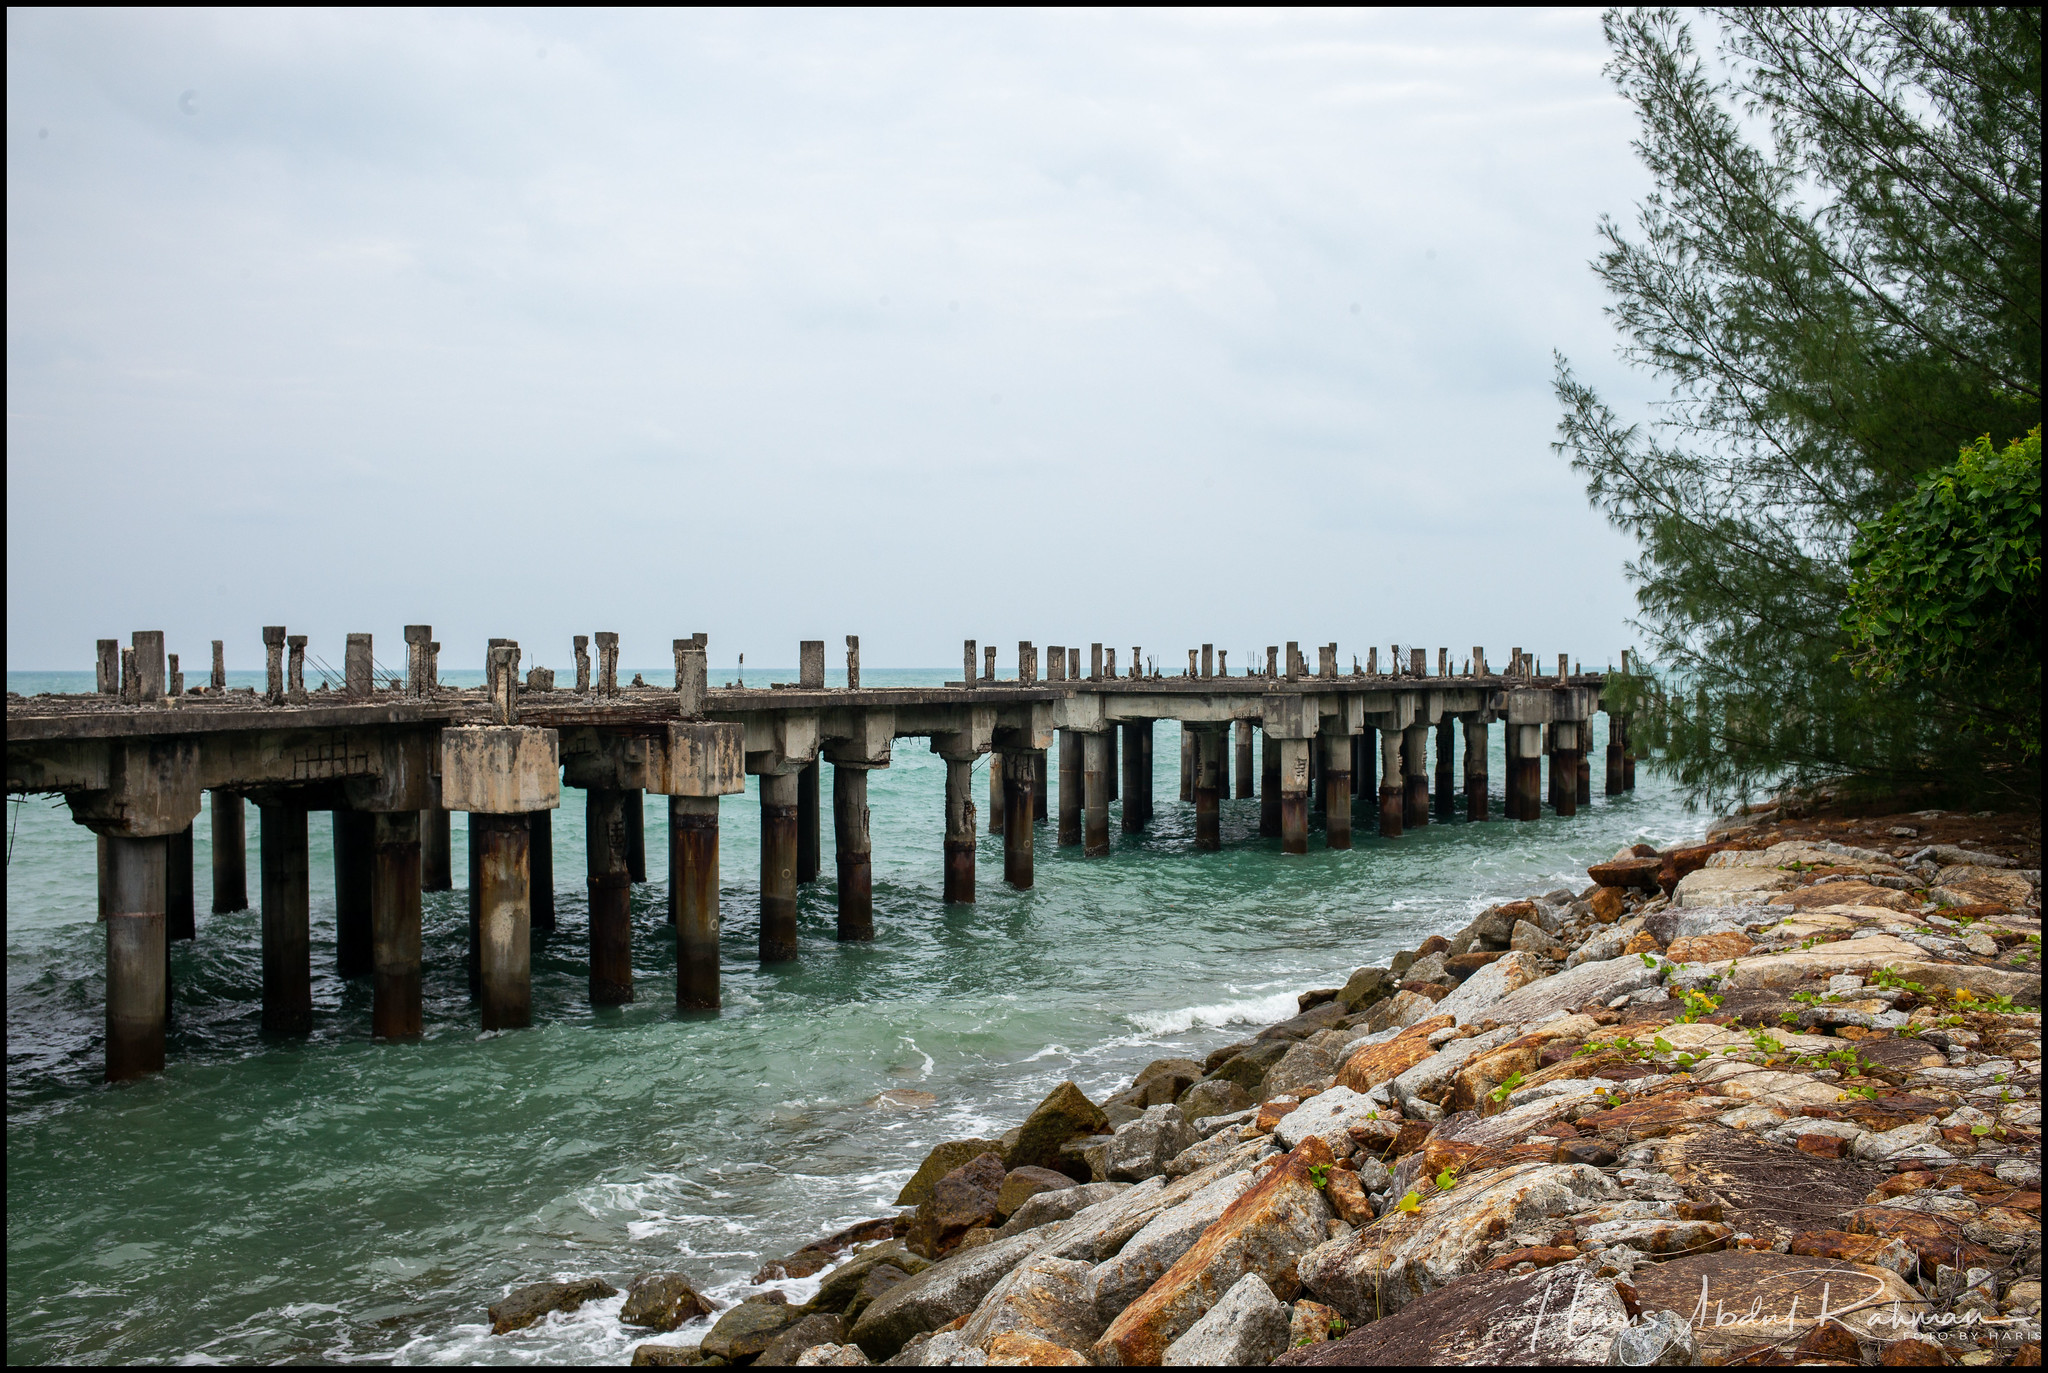 Right after we left the resort compound, we came across this abandoned jetty